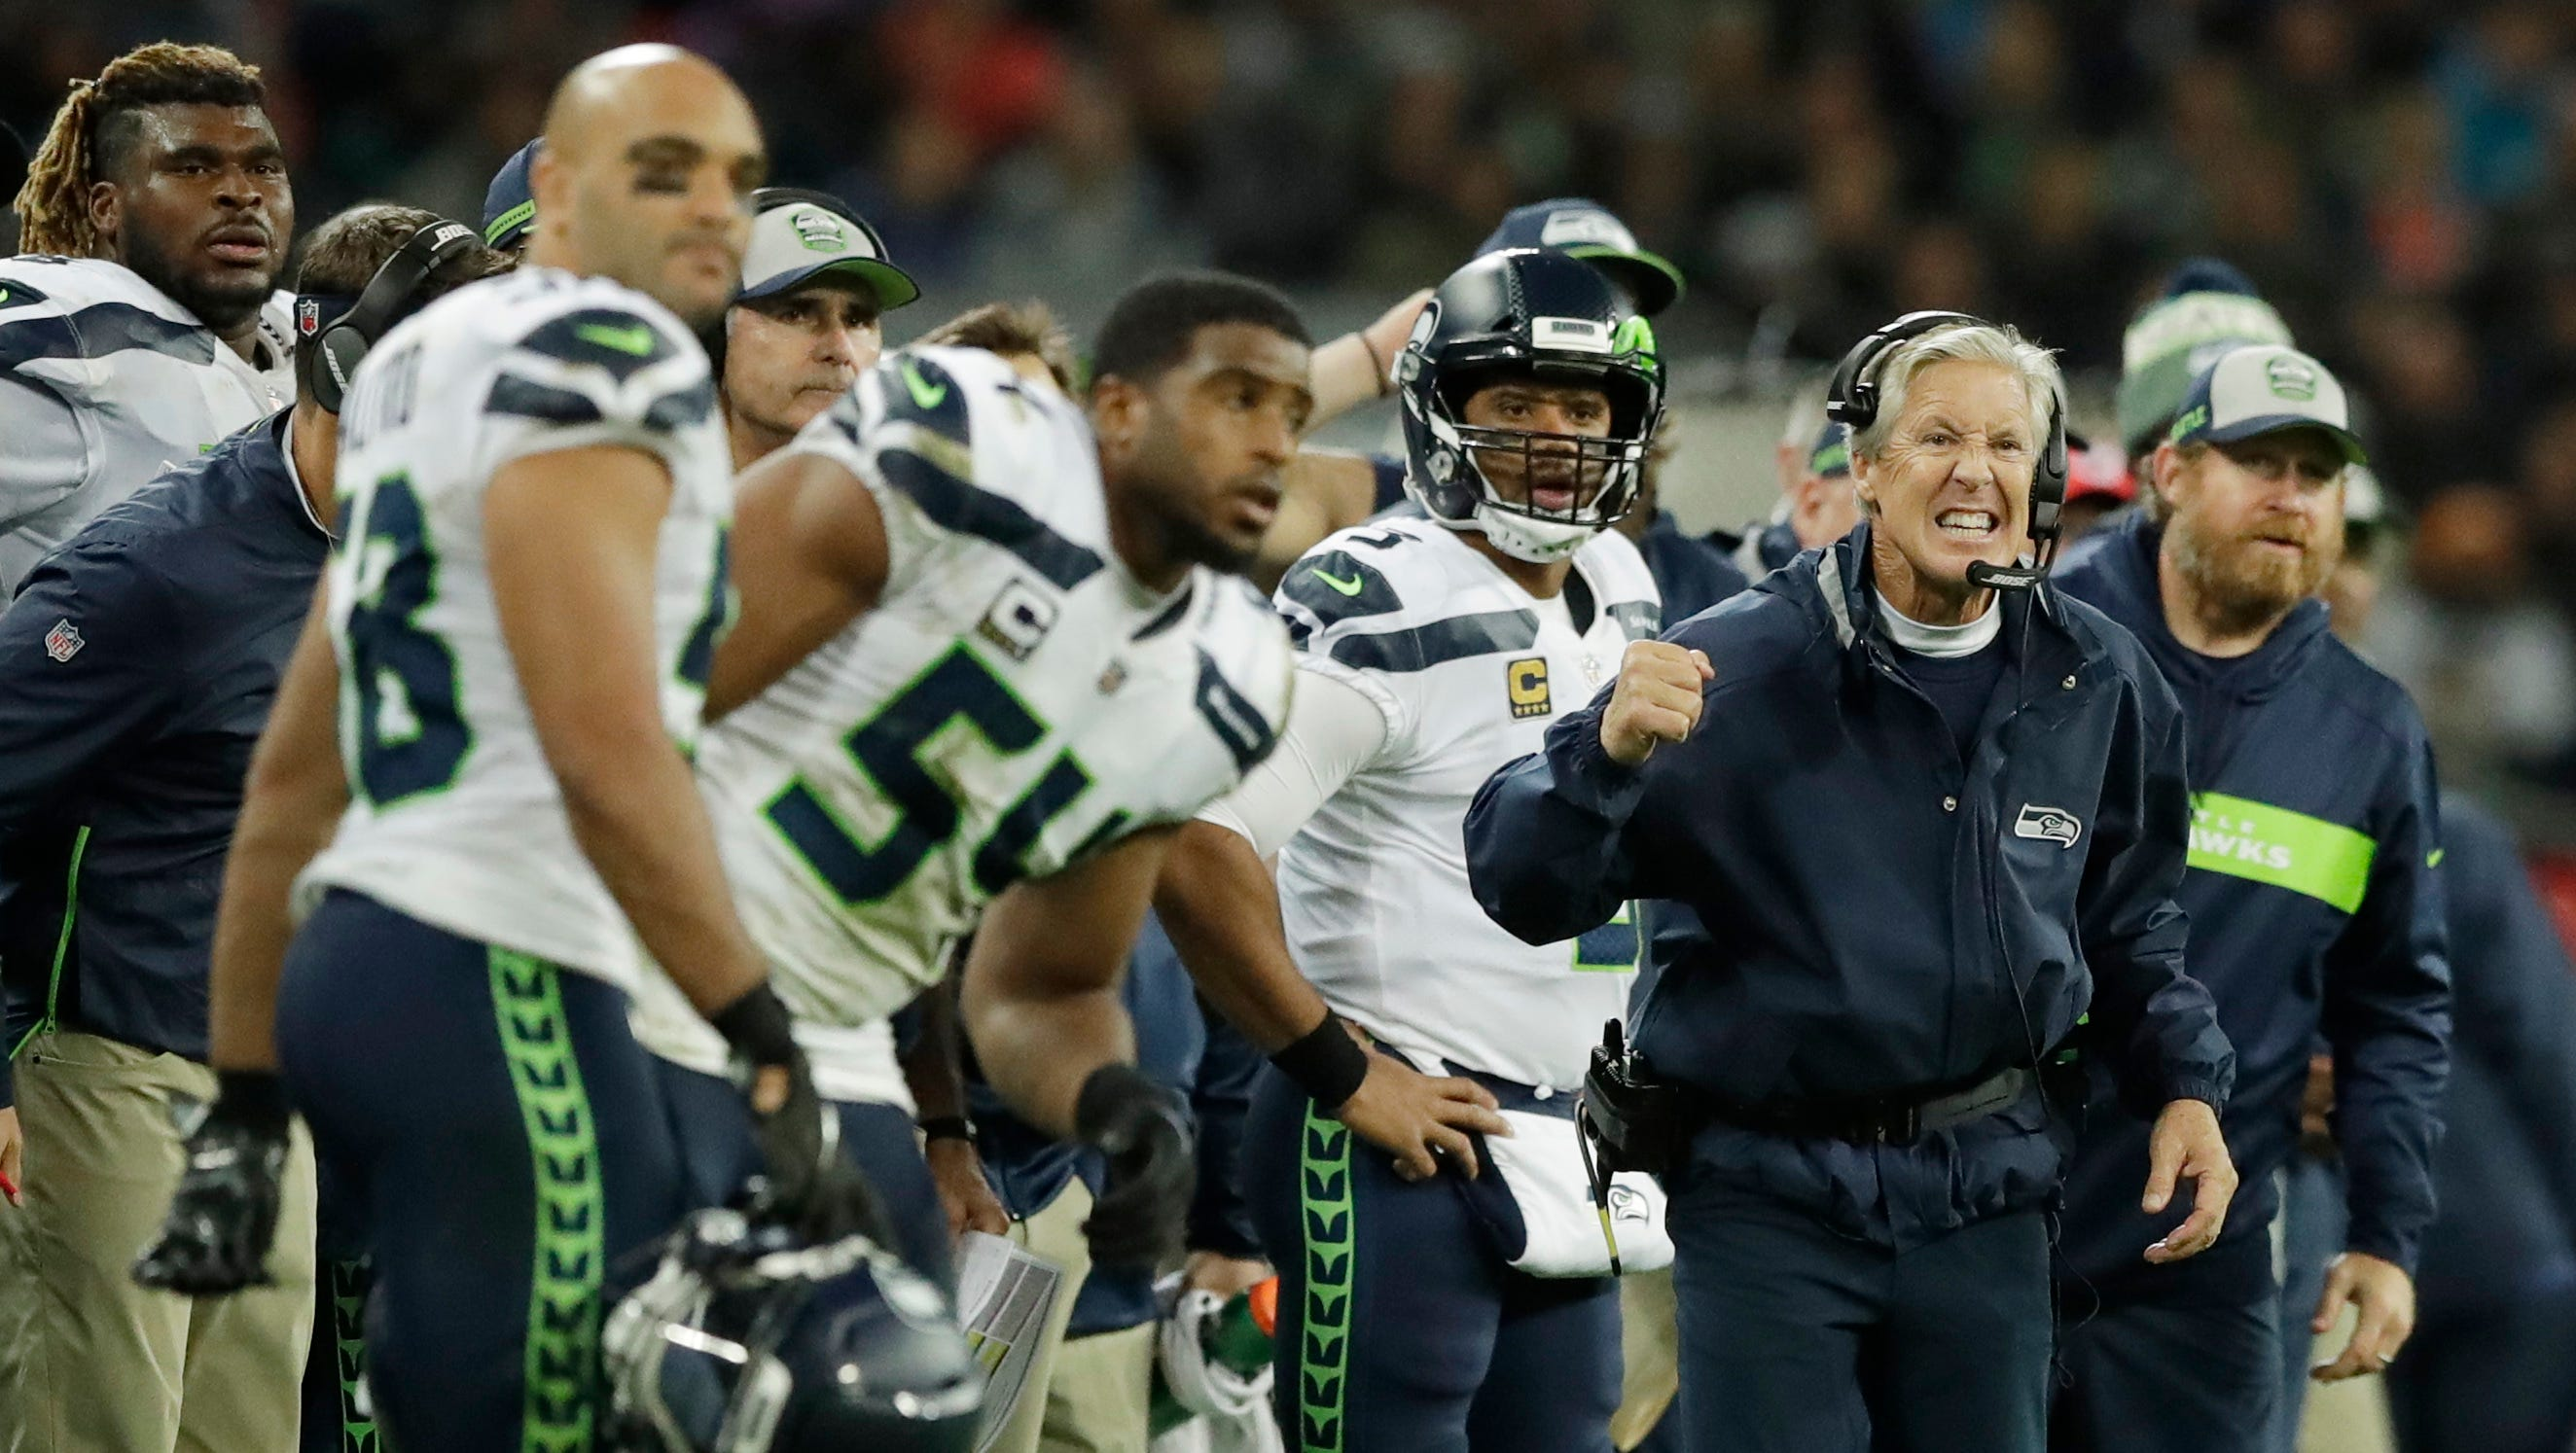 Coach Pete Carroll's Seahawks probably need 10 wins to be certain of making the playoffs. Given how the rest of the schedule shakes out, that makes Sunday's game in Detroit critical.